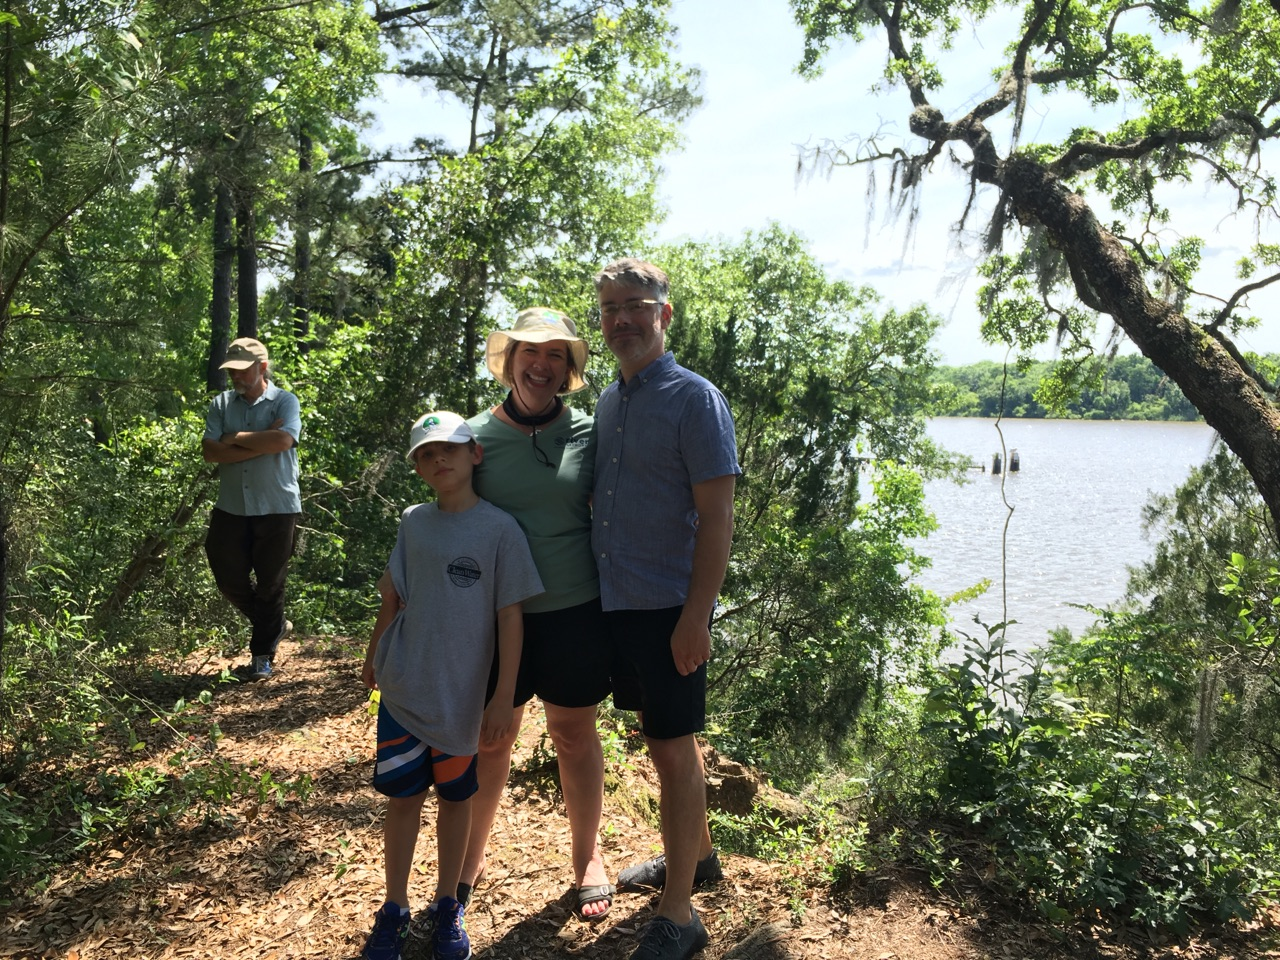 Jarrett (my husband), Coleman (my son), and I exploring the Delta on a field trip during River Rally.